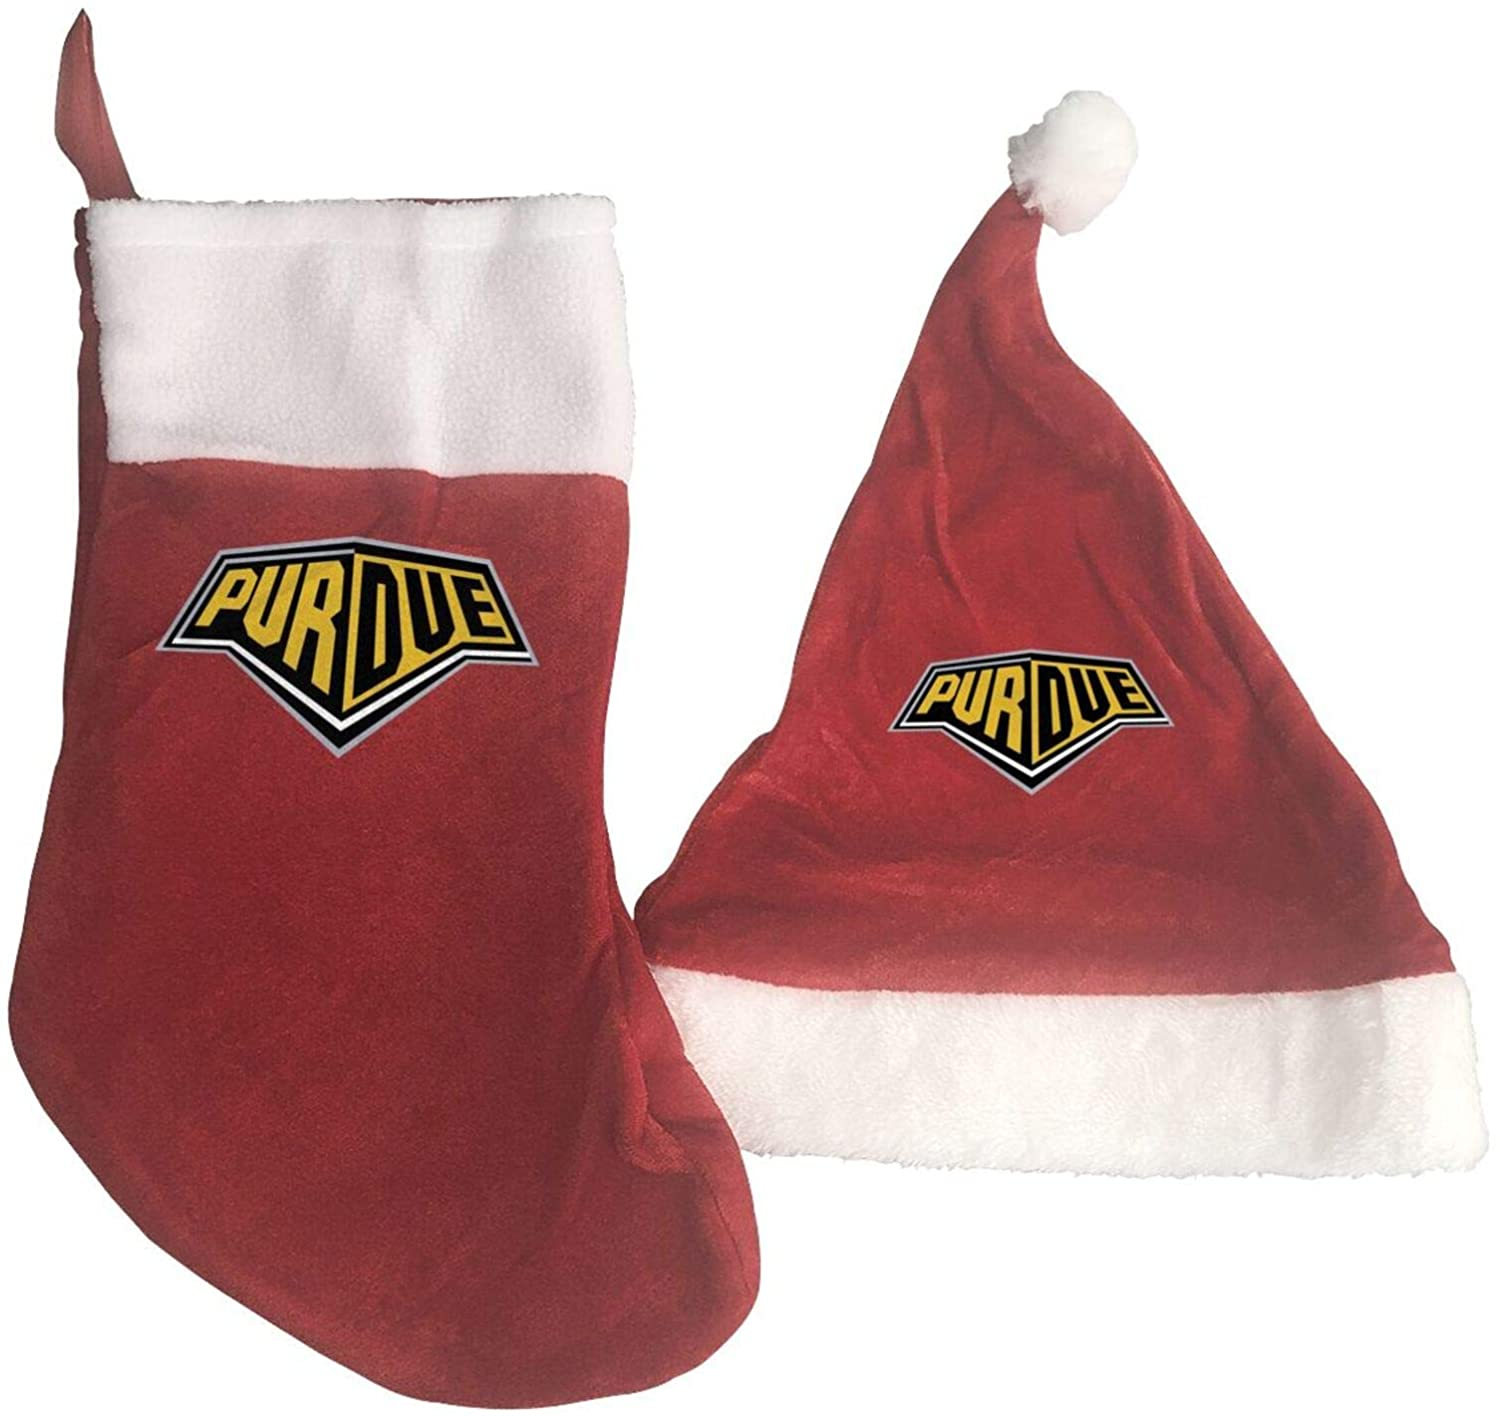 GLleaf Purdue University Logo Christmas Hat and Christmas Stocking Santa Socks Red Fireplace Hanging Stockings for Ornaments Family Holiday Xmas Party Decorations